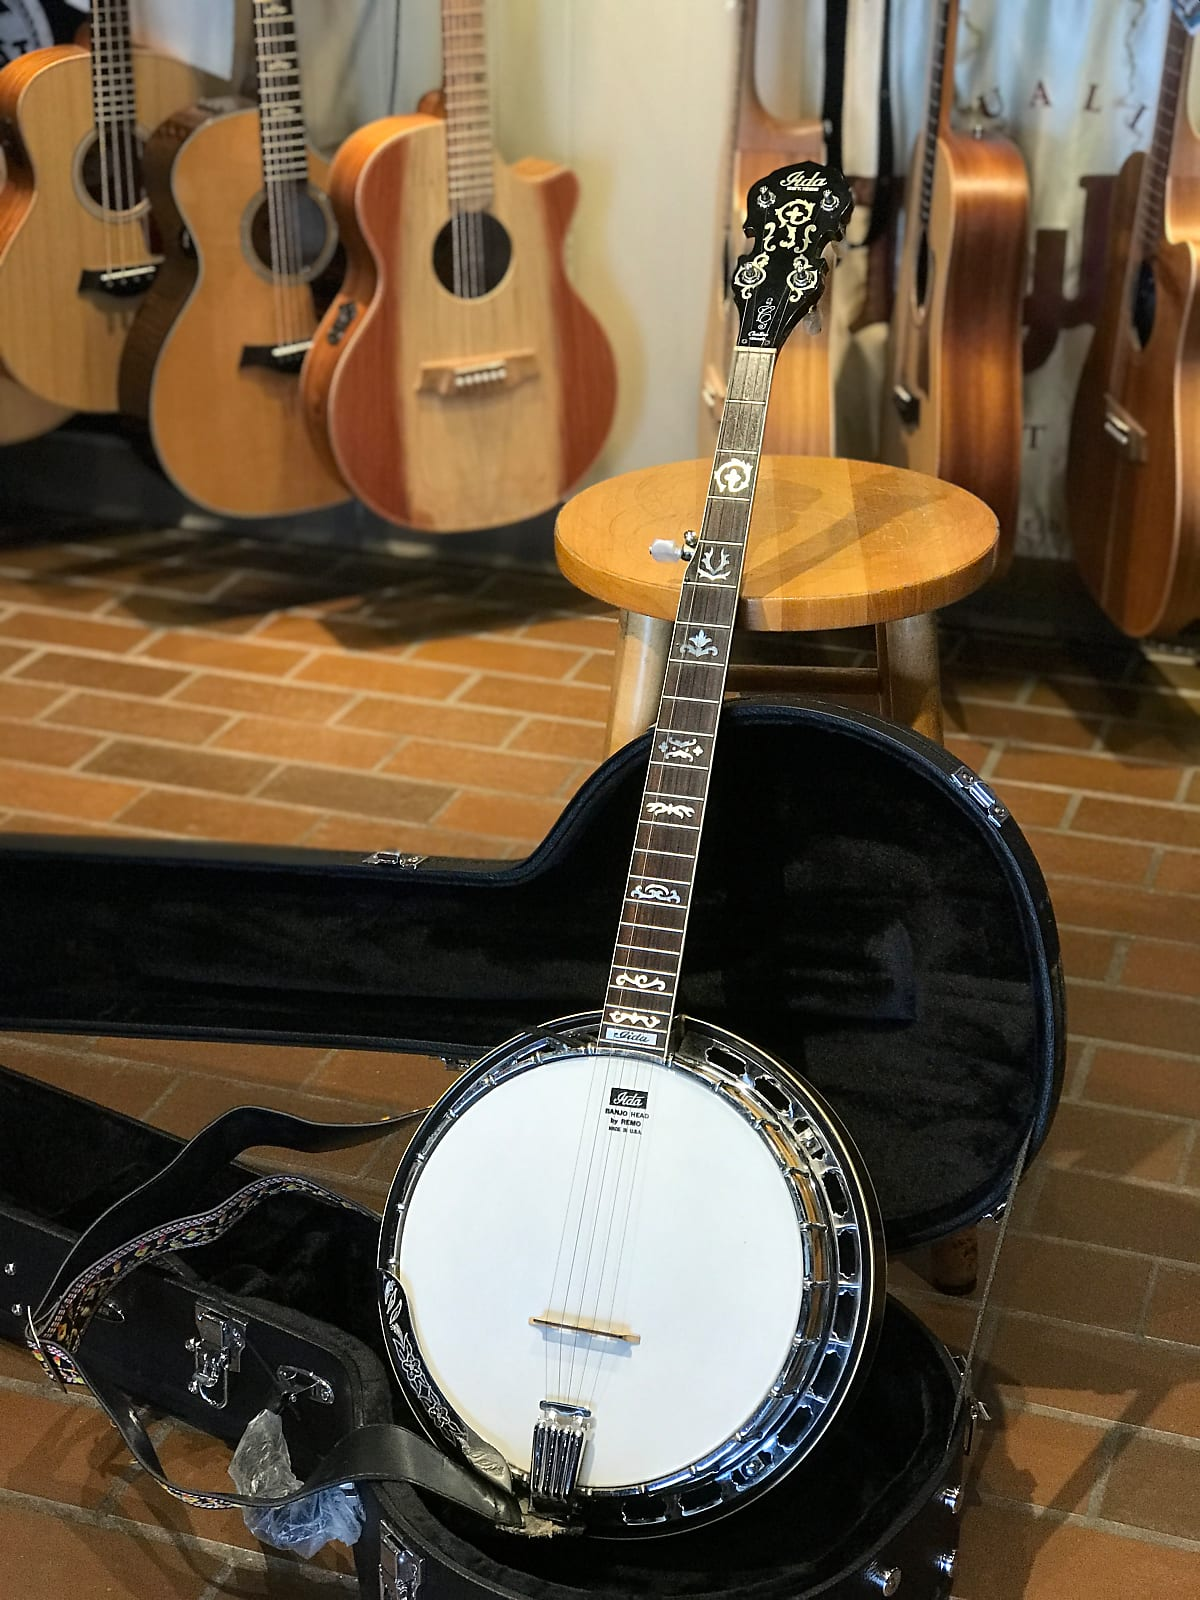 1980's Iida model 235 5 String Banjo with new hardshell case